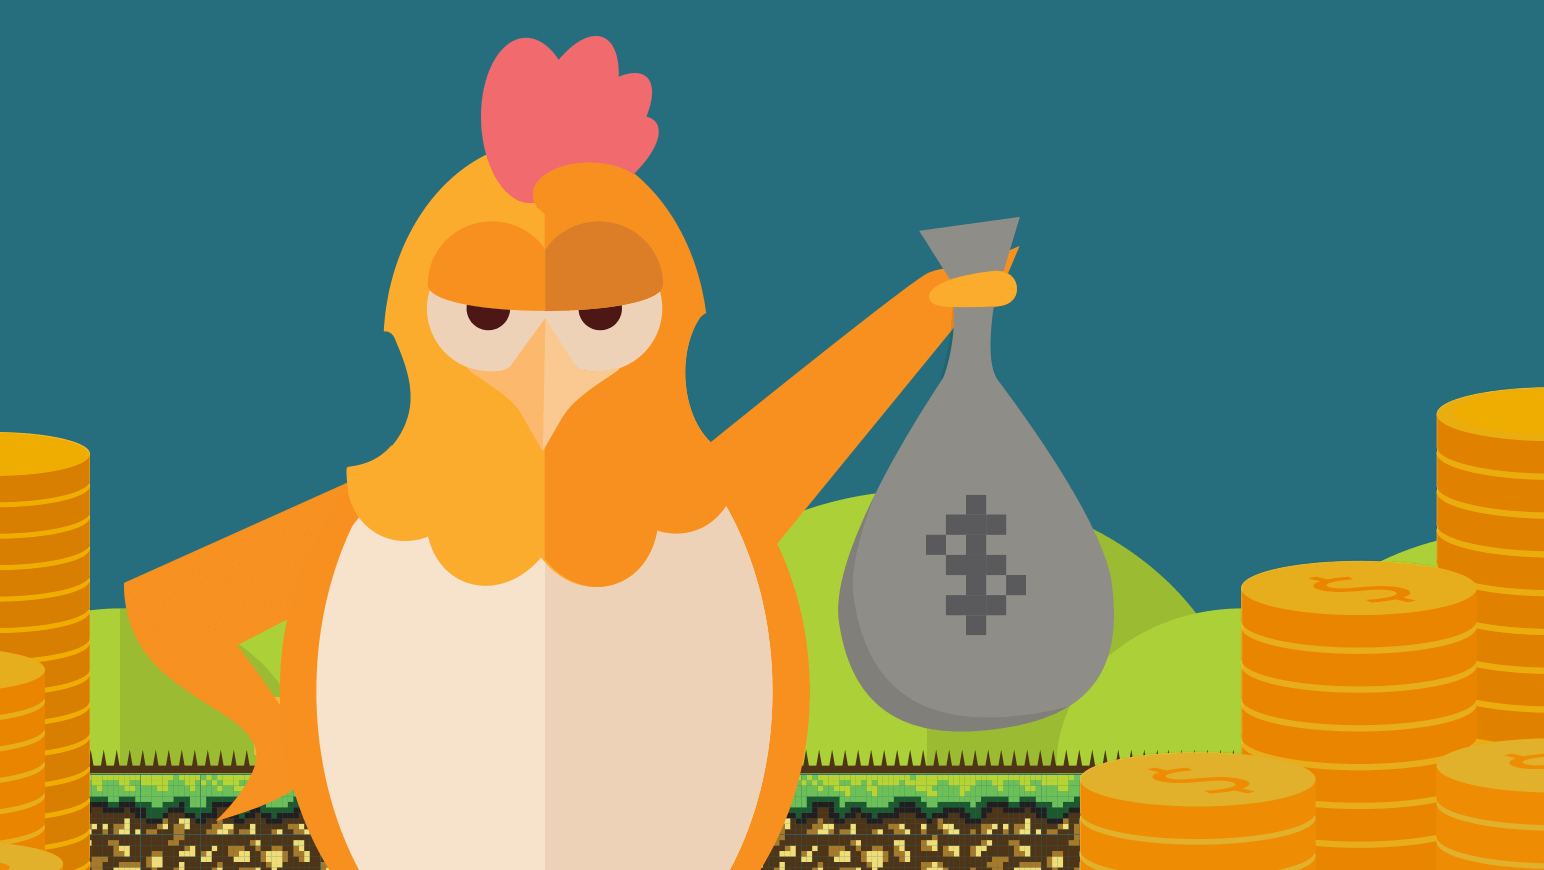 An illustration of the Namecheap chick is shown holding a bag of money, representing the need of WordPress developers to generate revenue.